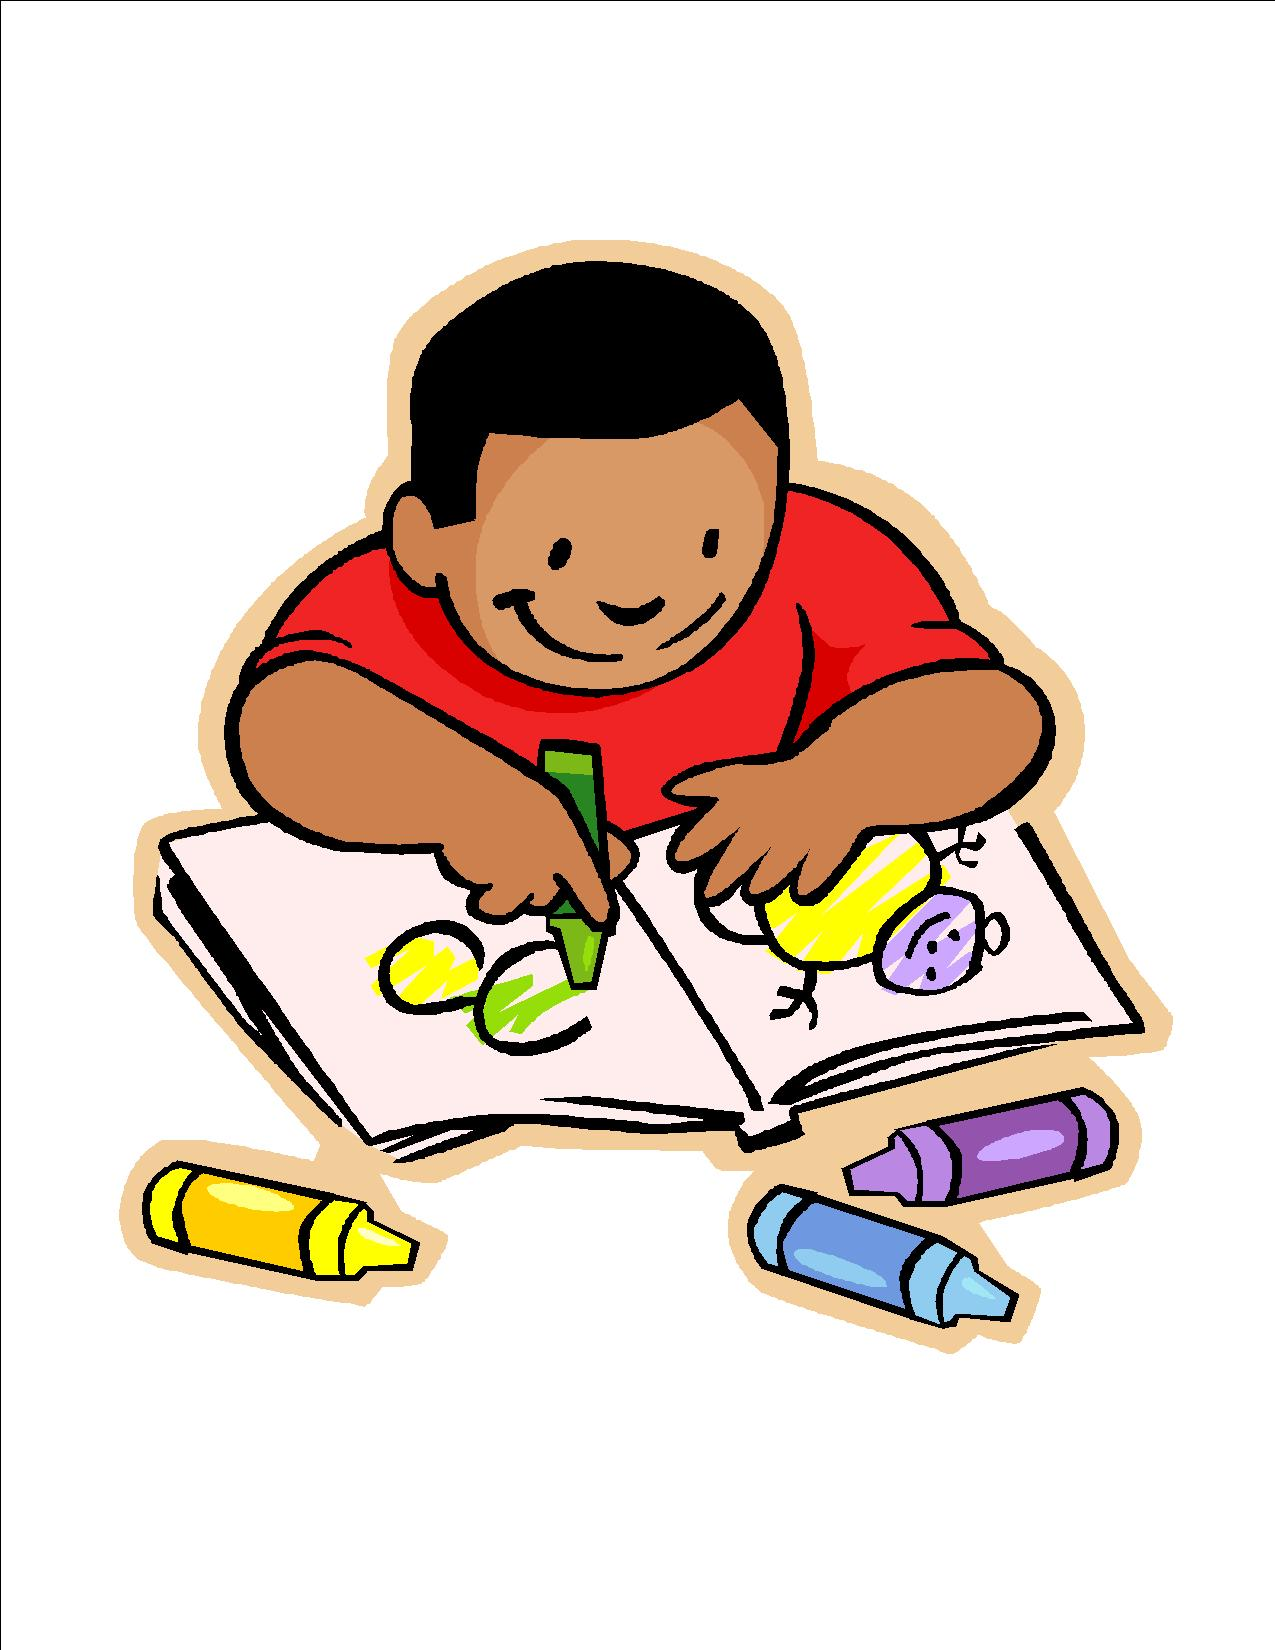 School clipart for writing clipart Free Child Clipart, Download Free Clip Art, Free Clip Art on Clipart ... clipart